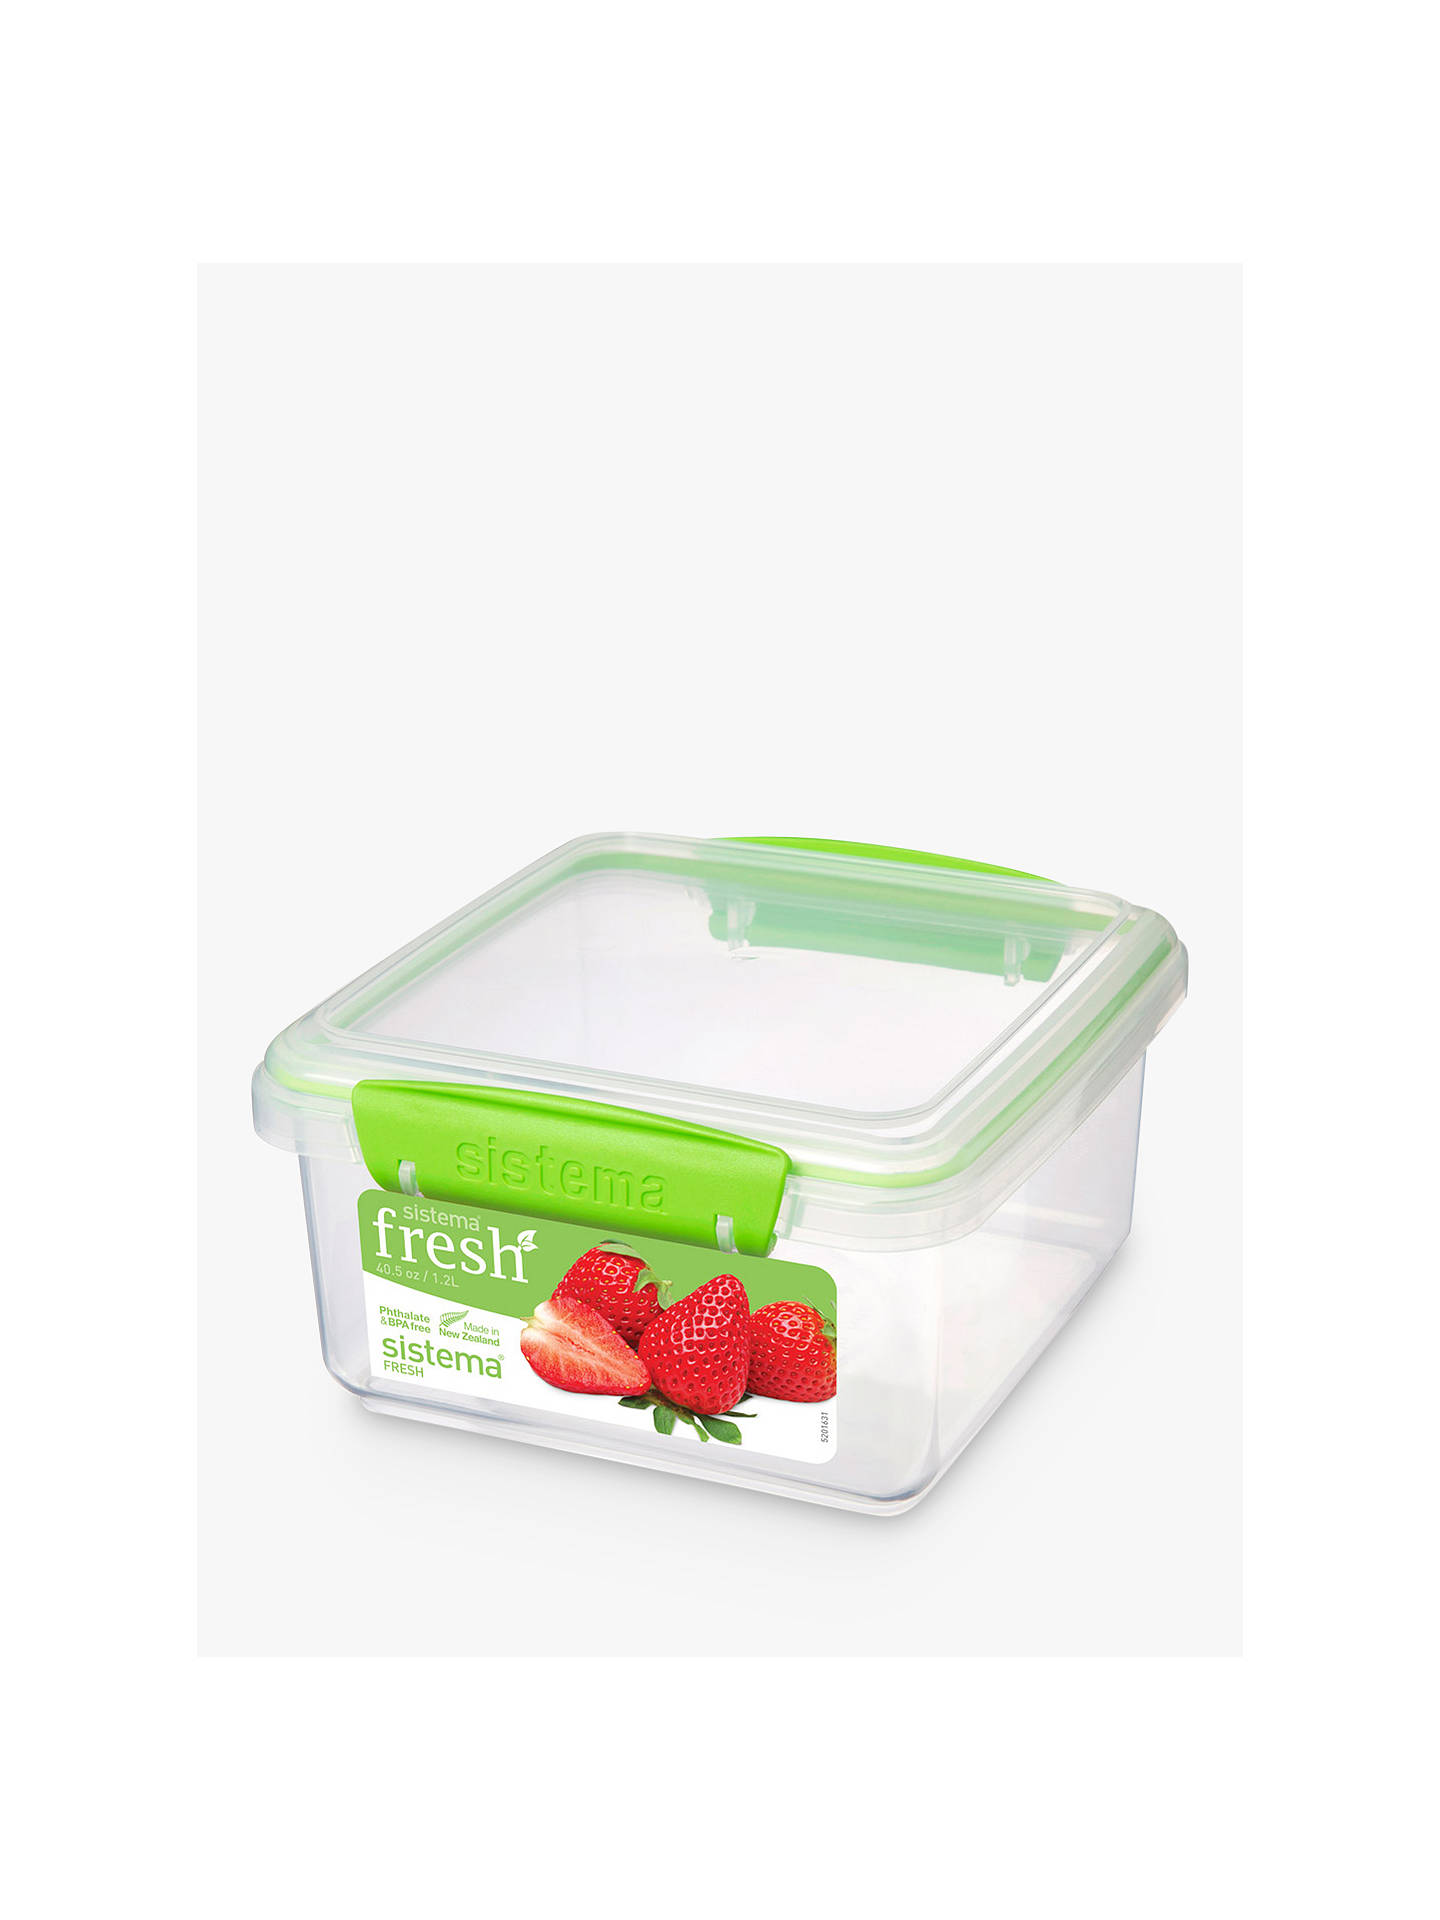 Buy Sistema Fresh Rectangular Storage Box, 1.2L Online at johnlewis.com